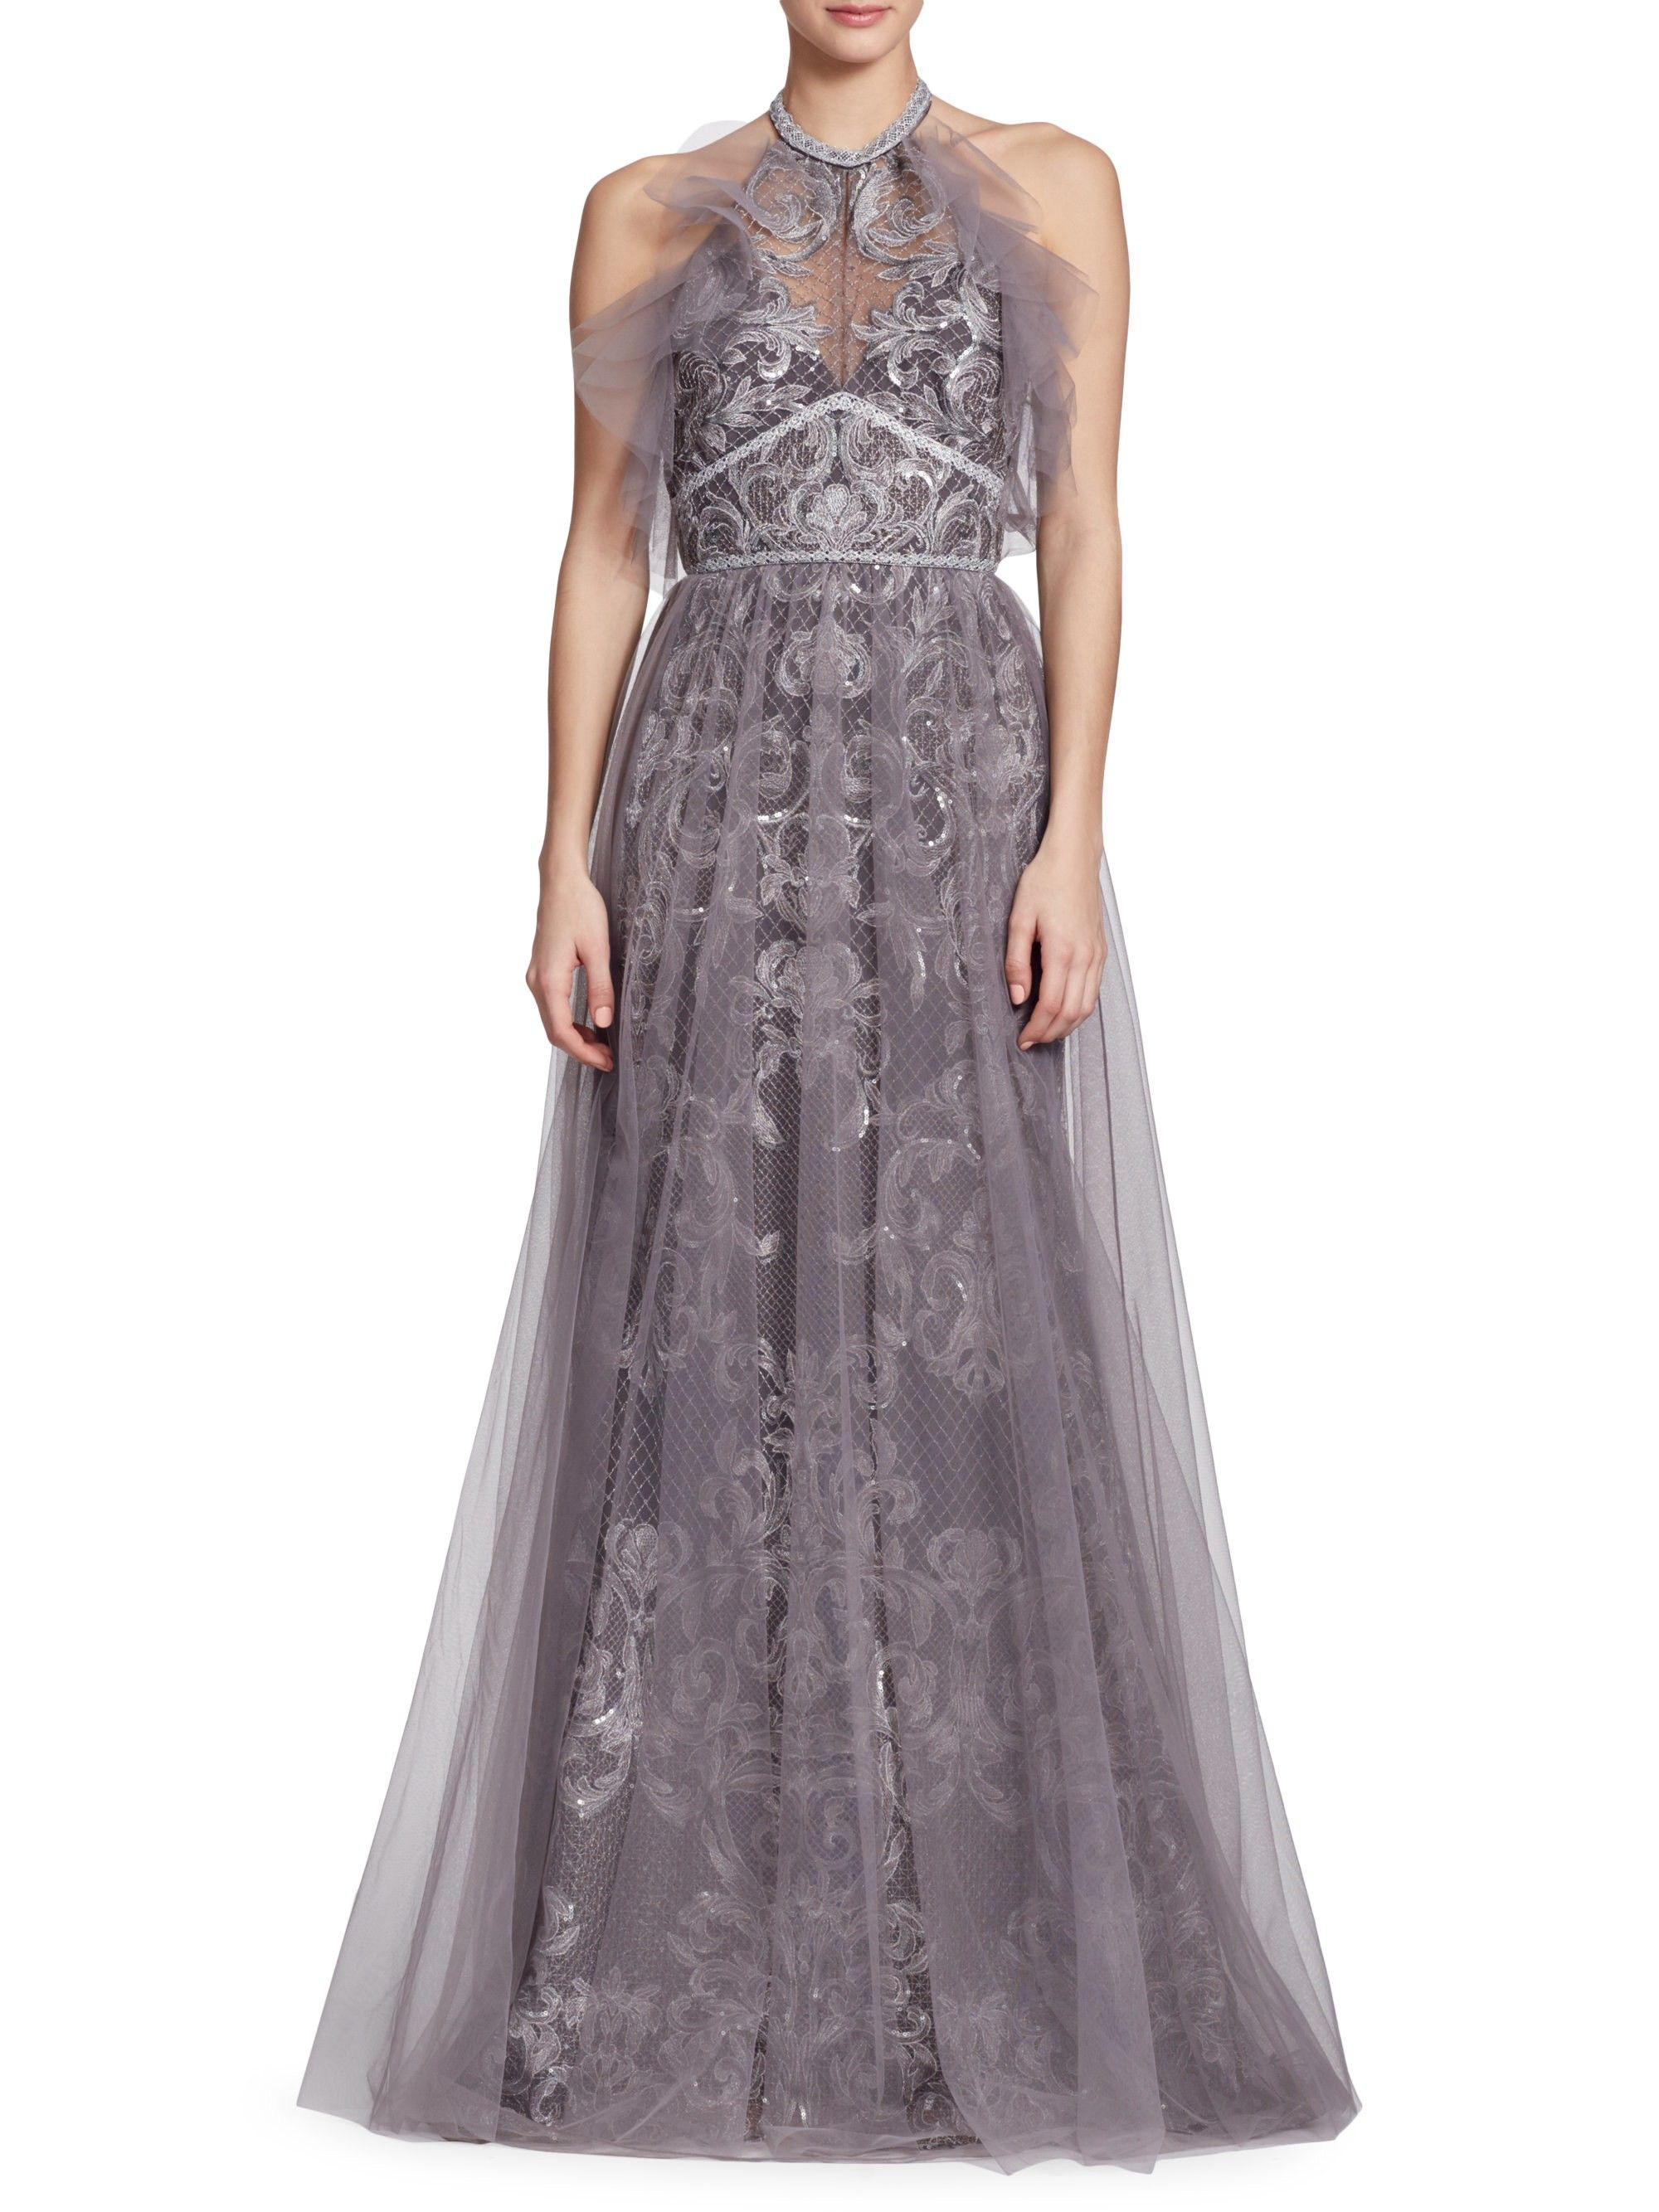 4511f6f6 Marchesa Notte Embroidered Halter Tulle Gown - Silver 6 in 2019 ...